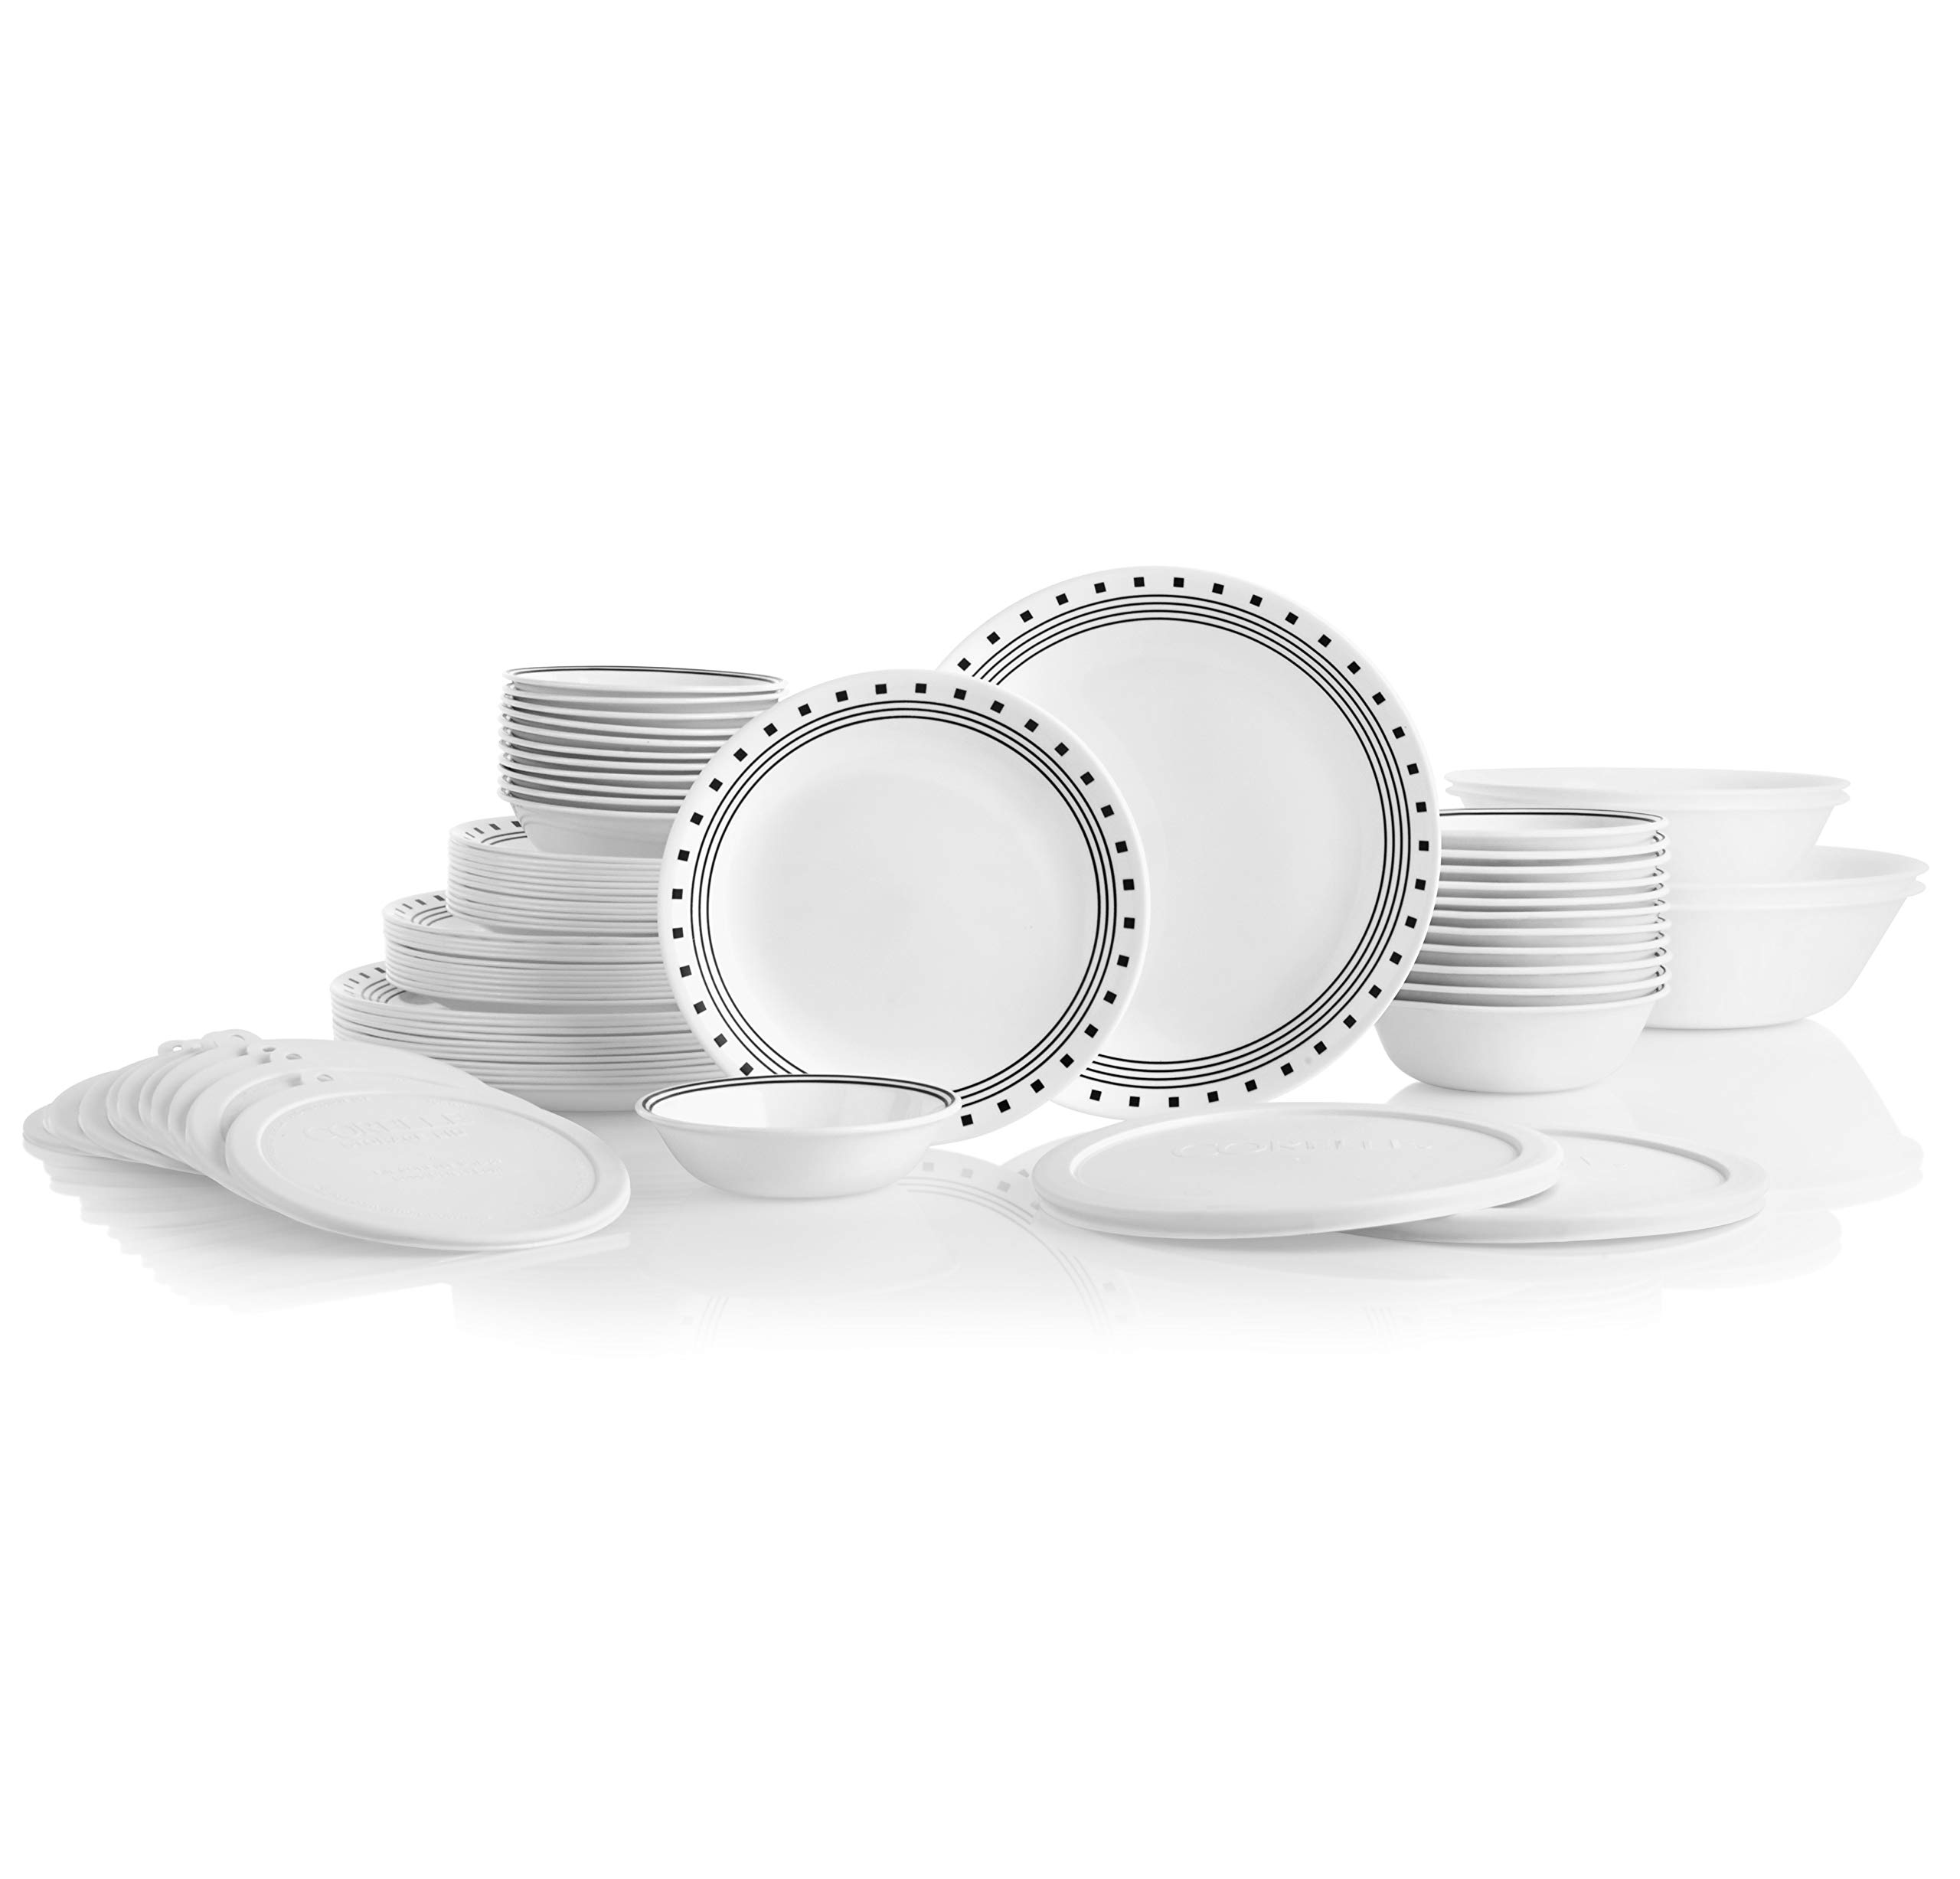 Corelle 78-Piece Service for 12, Chip Resistant, City Block) Dinnerware Set,